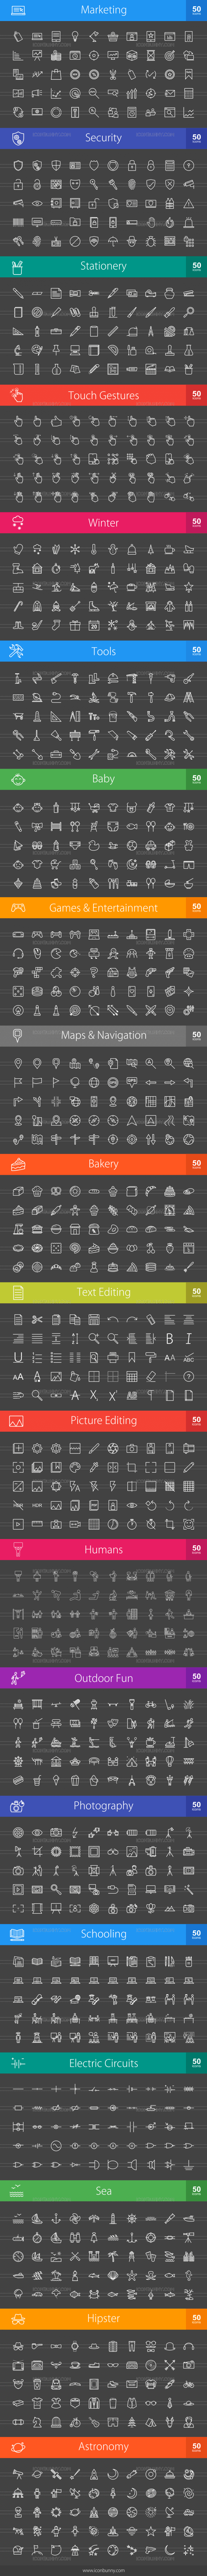 1000 Line Inverted Icons Bundle - Preview - IconBunny